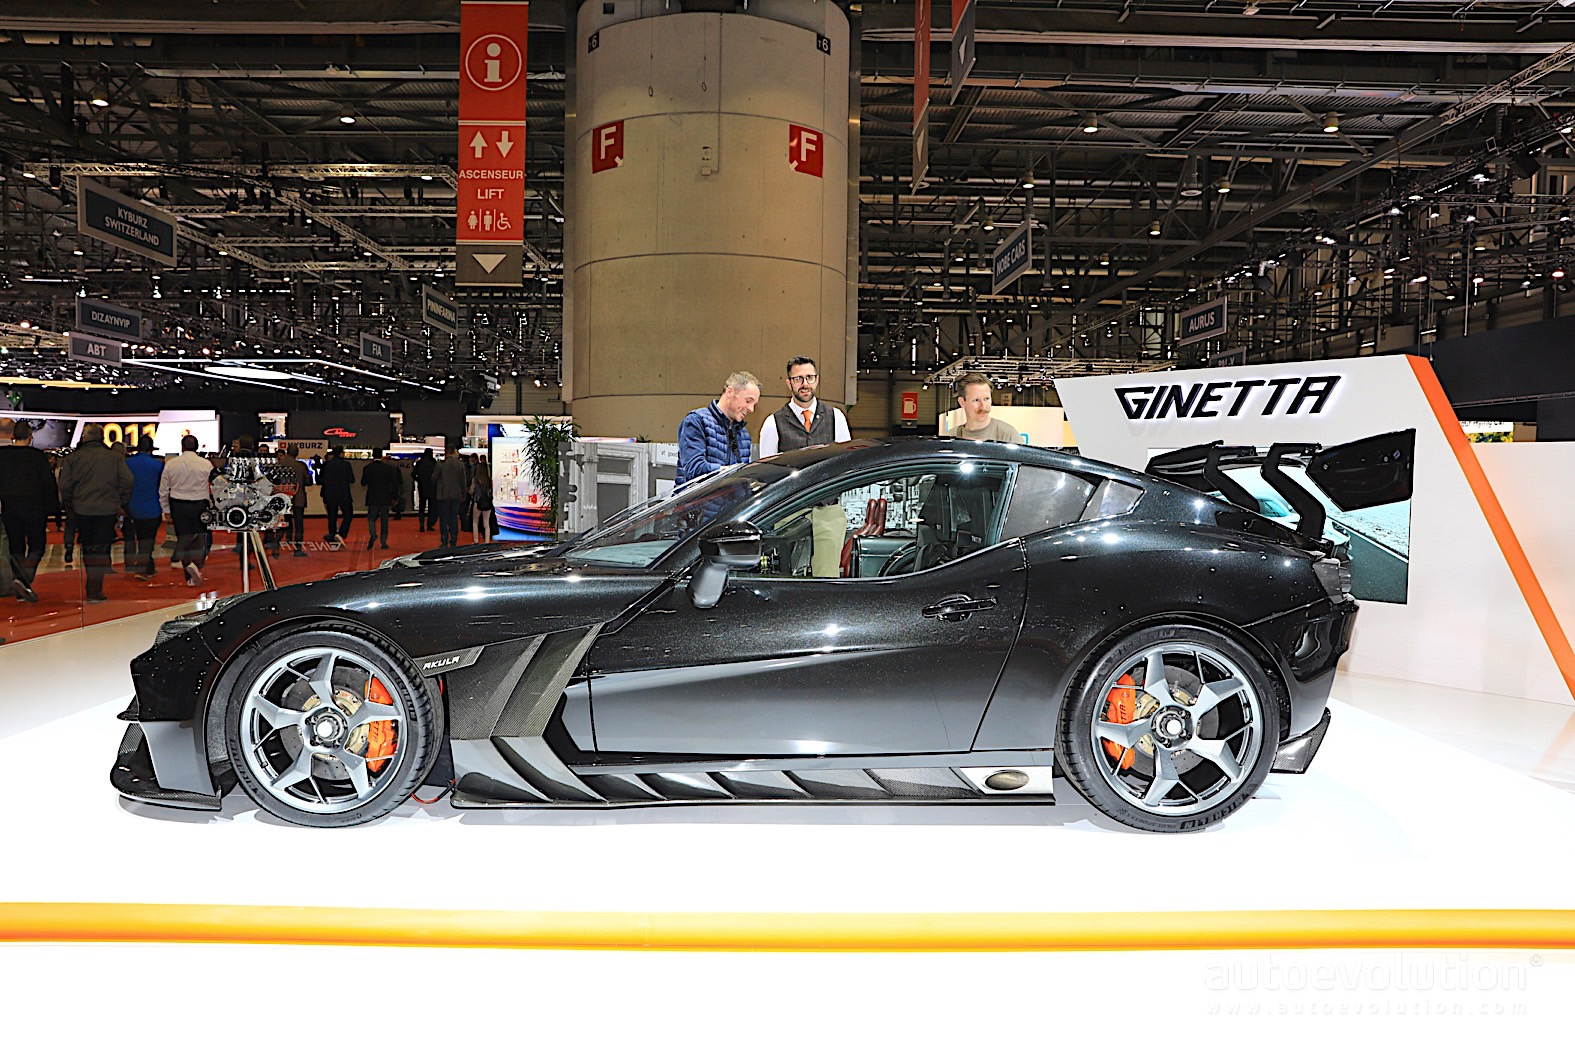 ginetta akula looks pitch black in geneva, priced at gbp 340,000